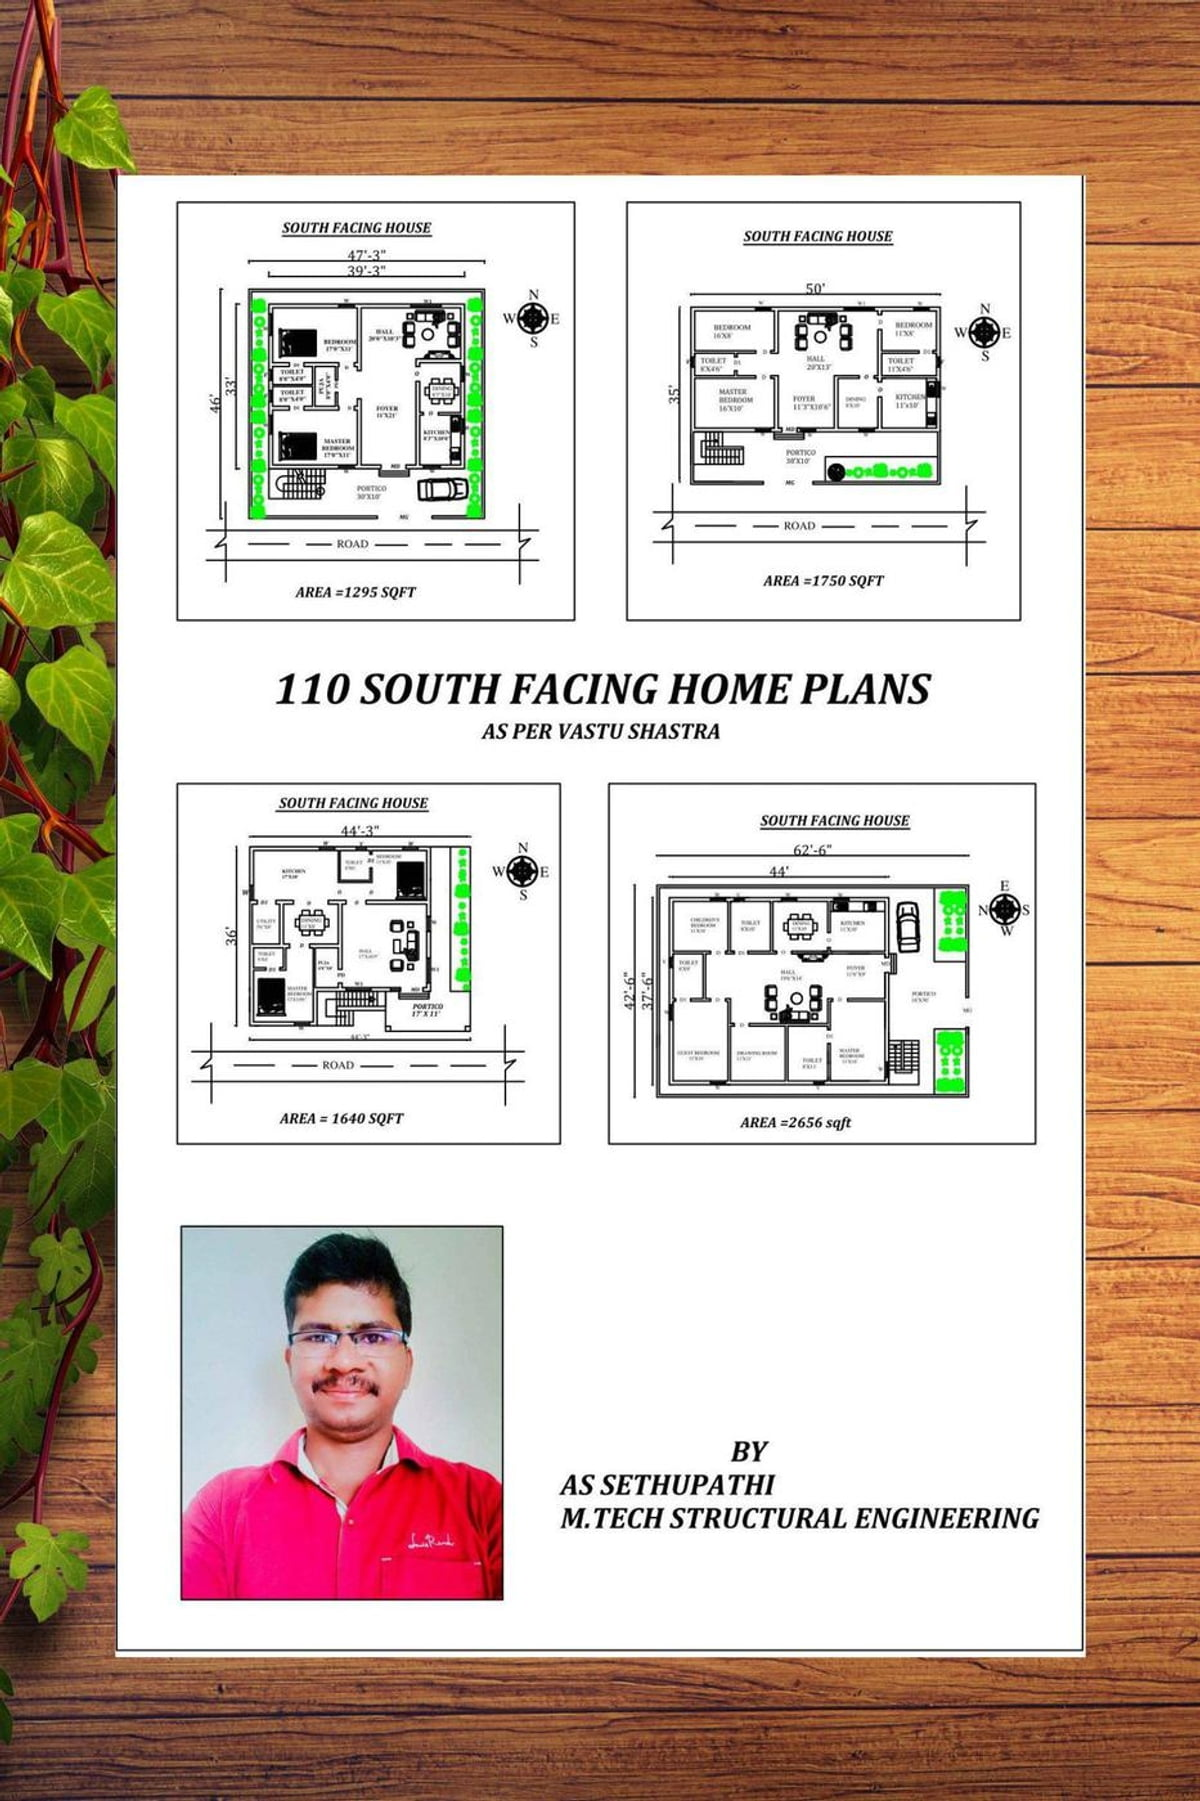 110 South Facing Home Plans As Per Vastu Shastra Ebook By A S Sethu Pathi 9781393532958 Rakuten Kobo United States